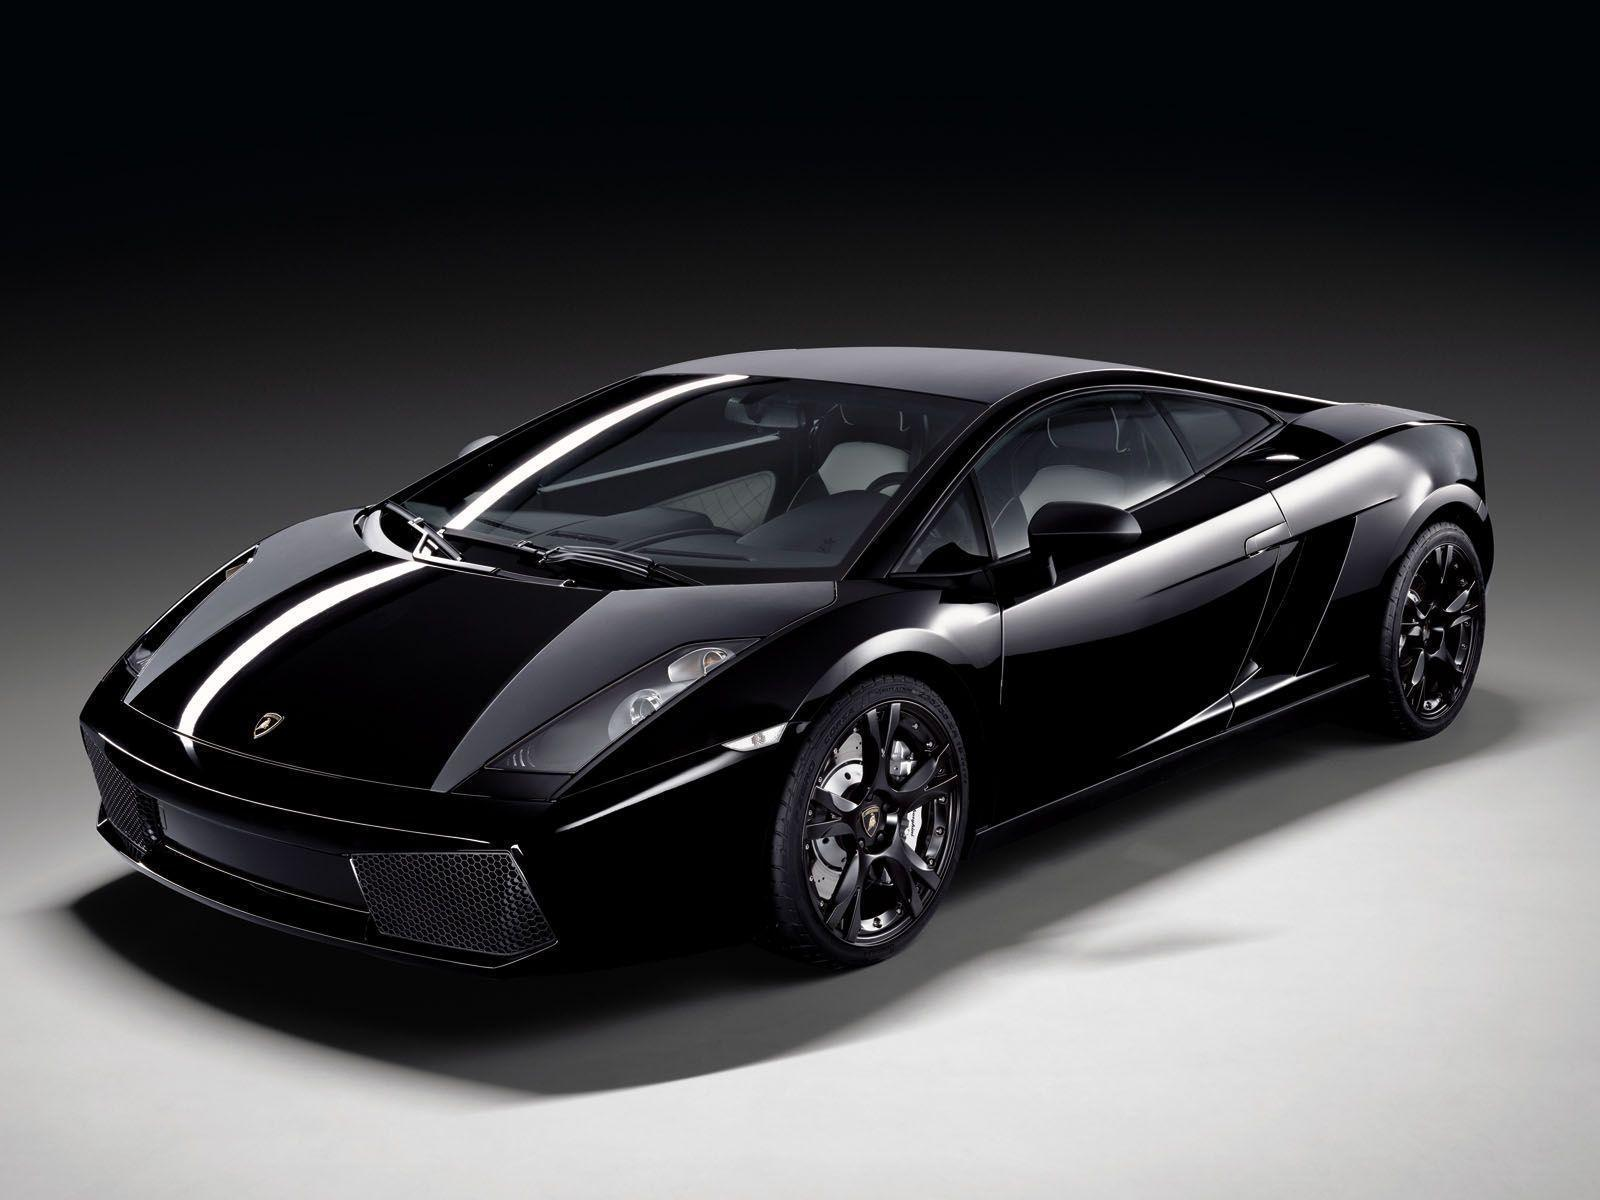 Cool Exotic Cars Wallpapers Hd Widescreen 10 HD Wallpapers